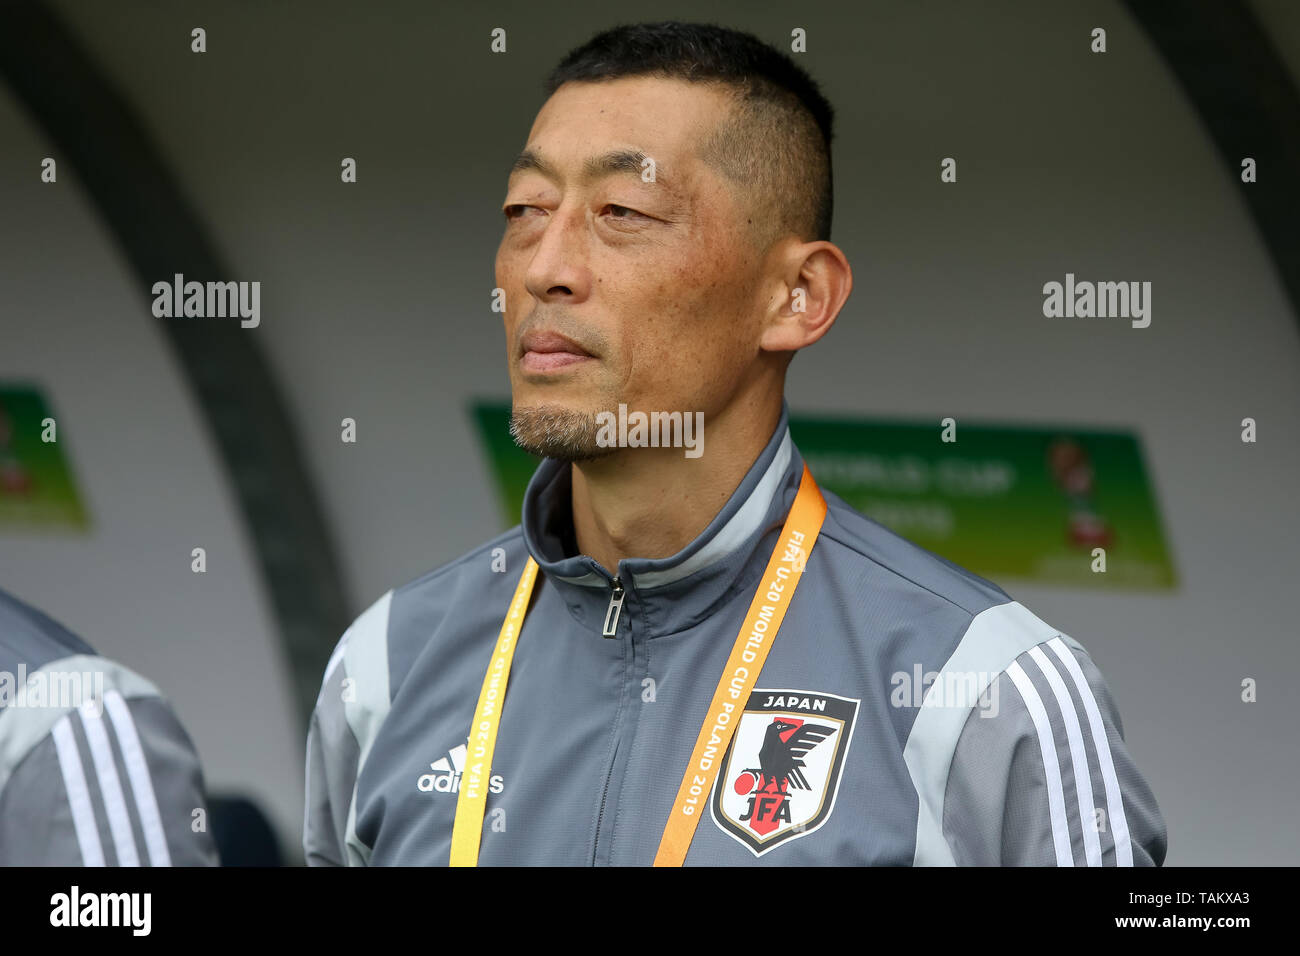 Gdynia Stadium, Gdynia, Poland - 26th May, 2019: Norio Takahashi, goalkeeper coach from Japan seen during FIFA U-20 World Cup match between Mexico and Japan (GROUP B) in Gdynia. (Final score; Mexico 0:3 Japan) - Stock Image